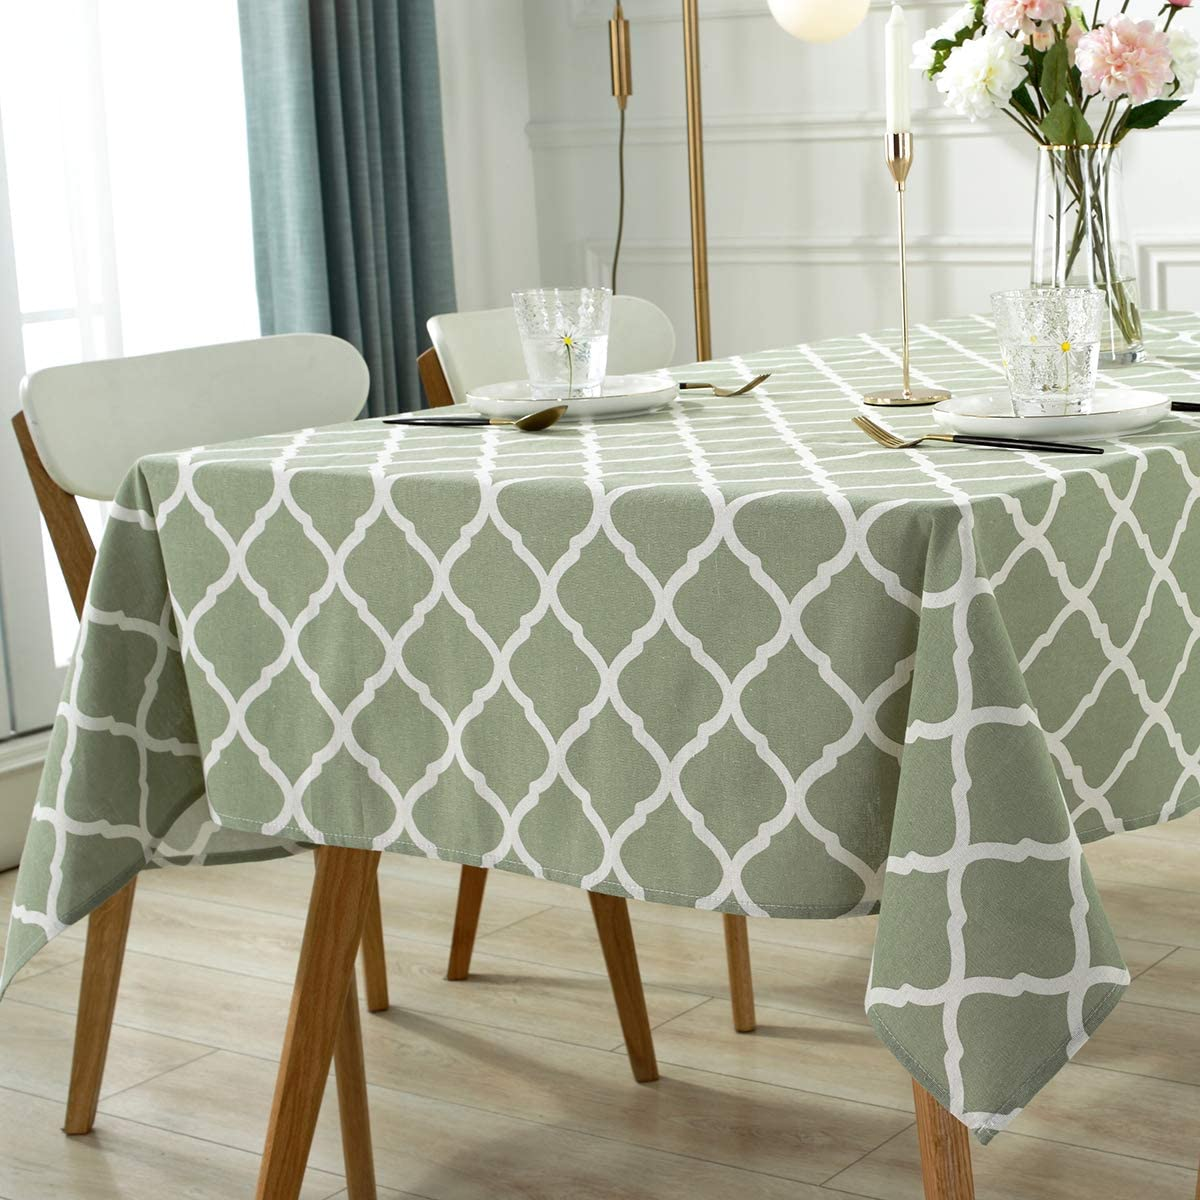 """Rectangle Tablecloth Cotton Linen-52""""x70""""-Table Cover Wrinkle Free Table Cloths Floral Printed Tabletops Outdoor and Indoor Dining Kitchen Patio Decoration (Rectangular/Oblong(4-6 Seats), Green): Home & Kitchen"""